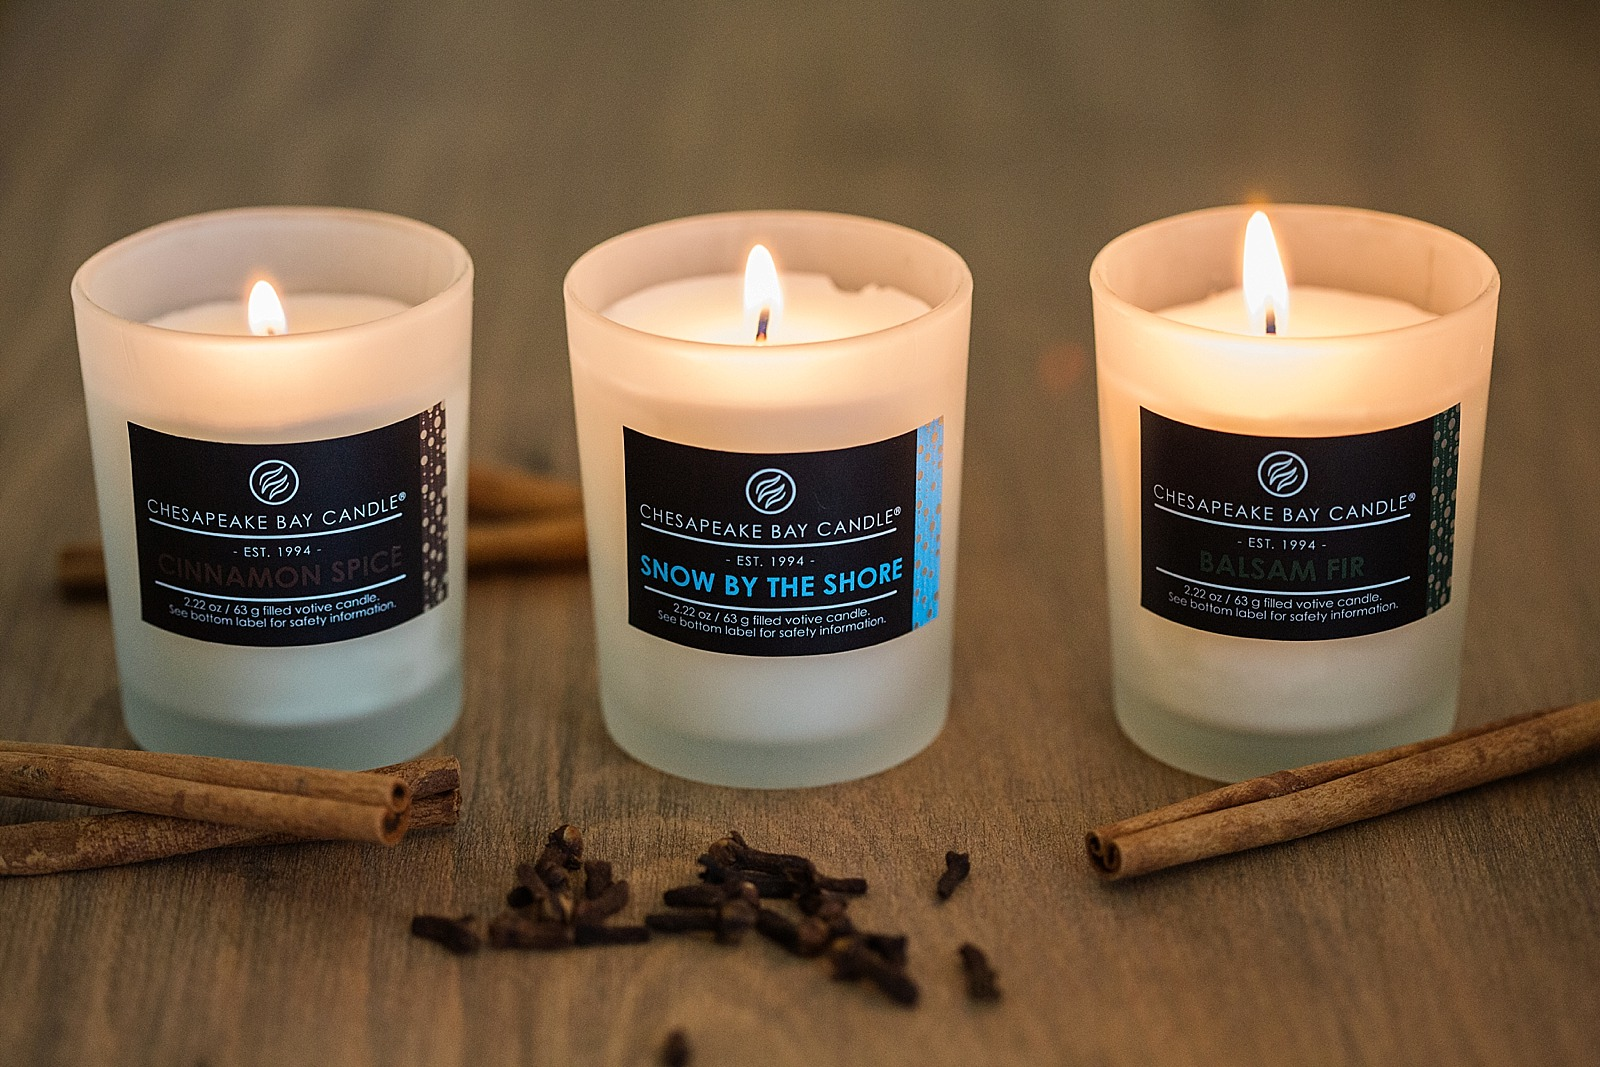 chesapeake-bay-candle-heritage-collection-best-fall-winter-holiday-candles-soy-mix-essential-oils-6